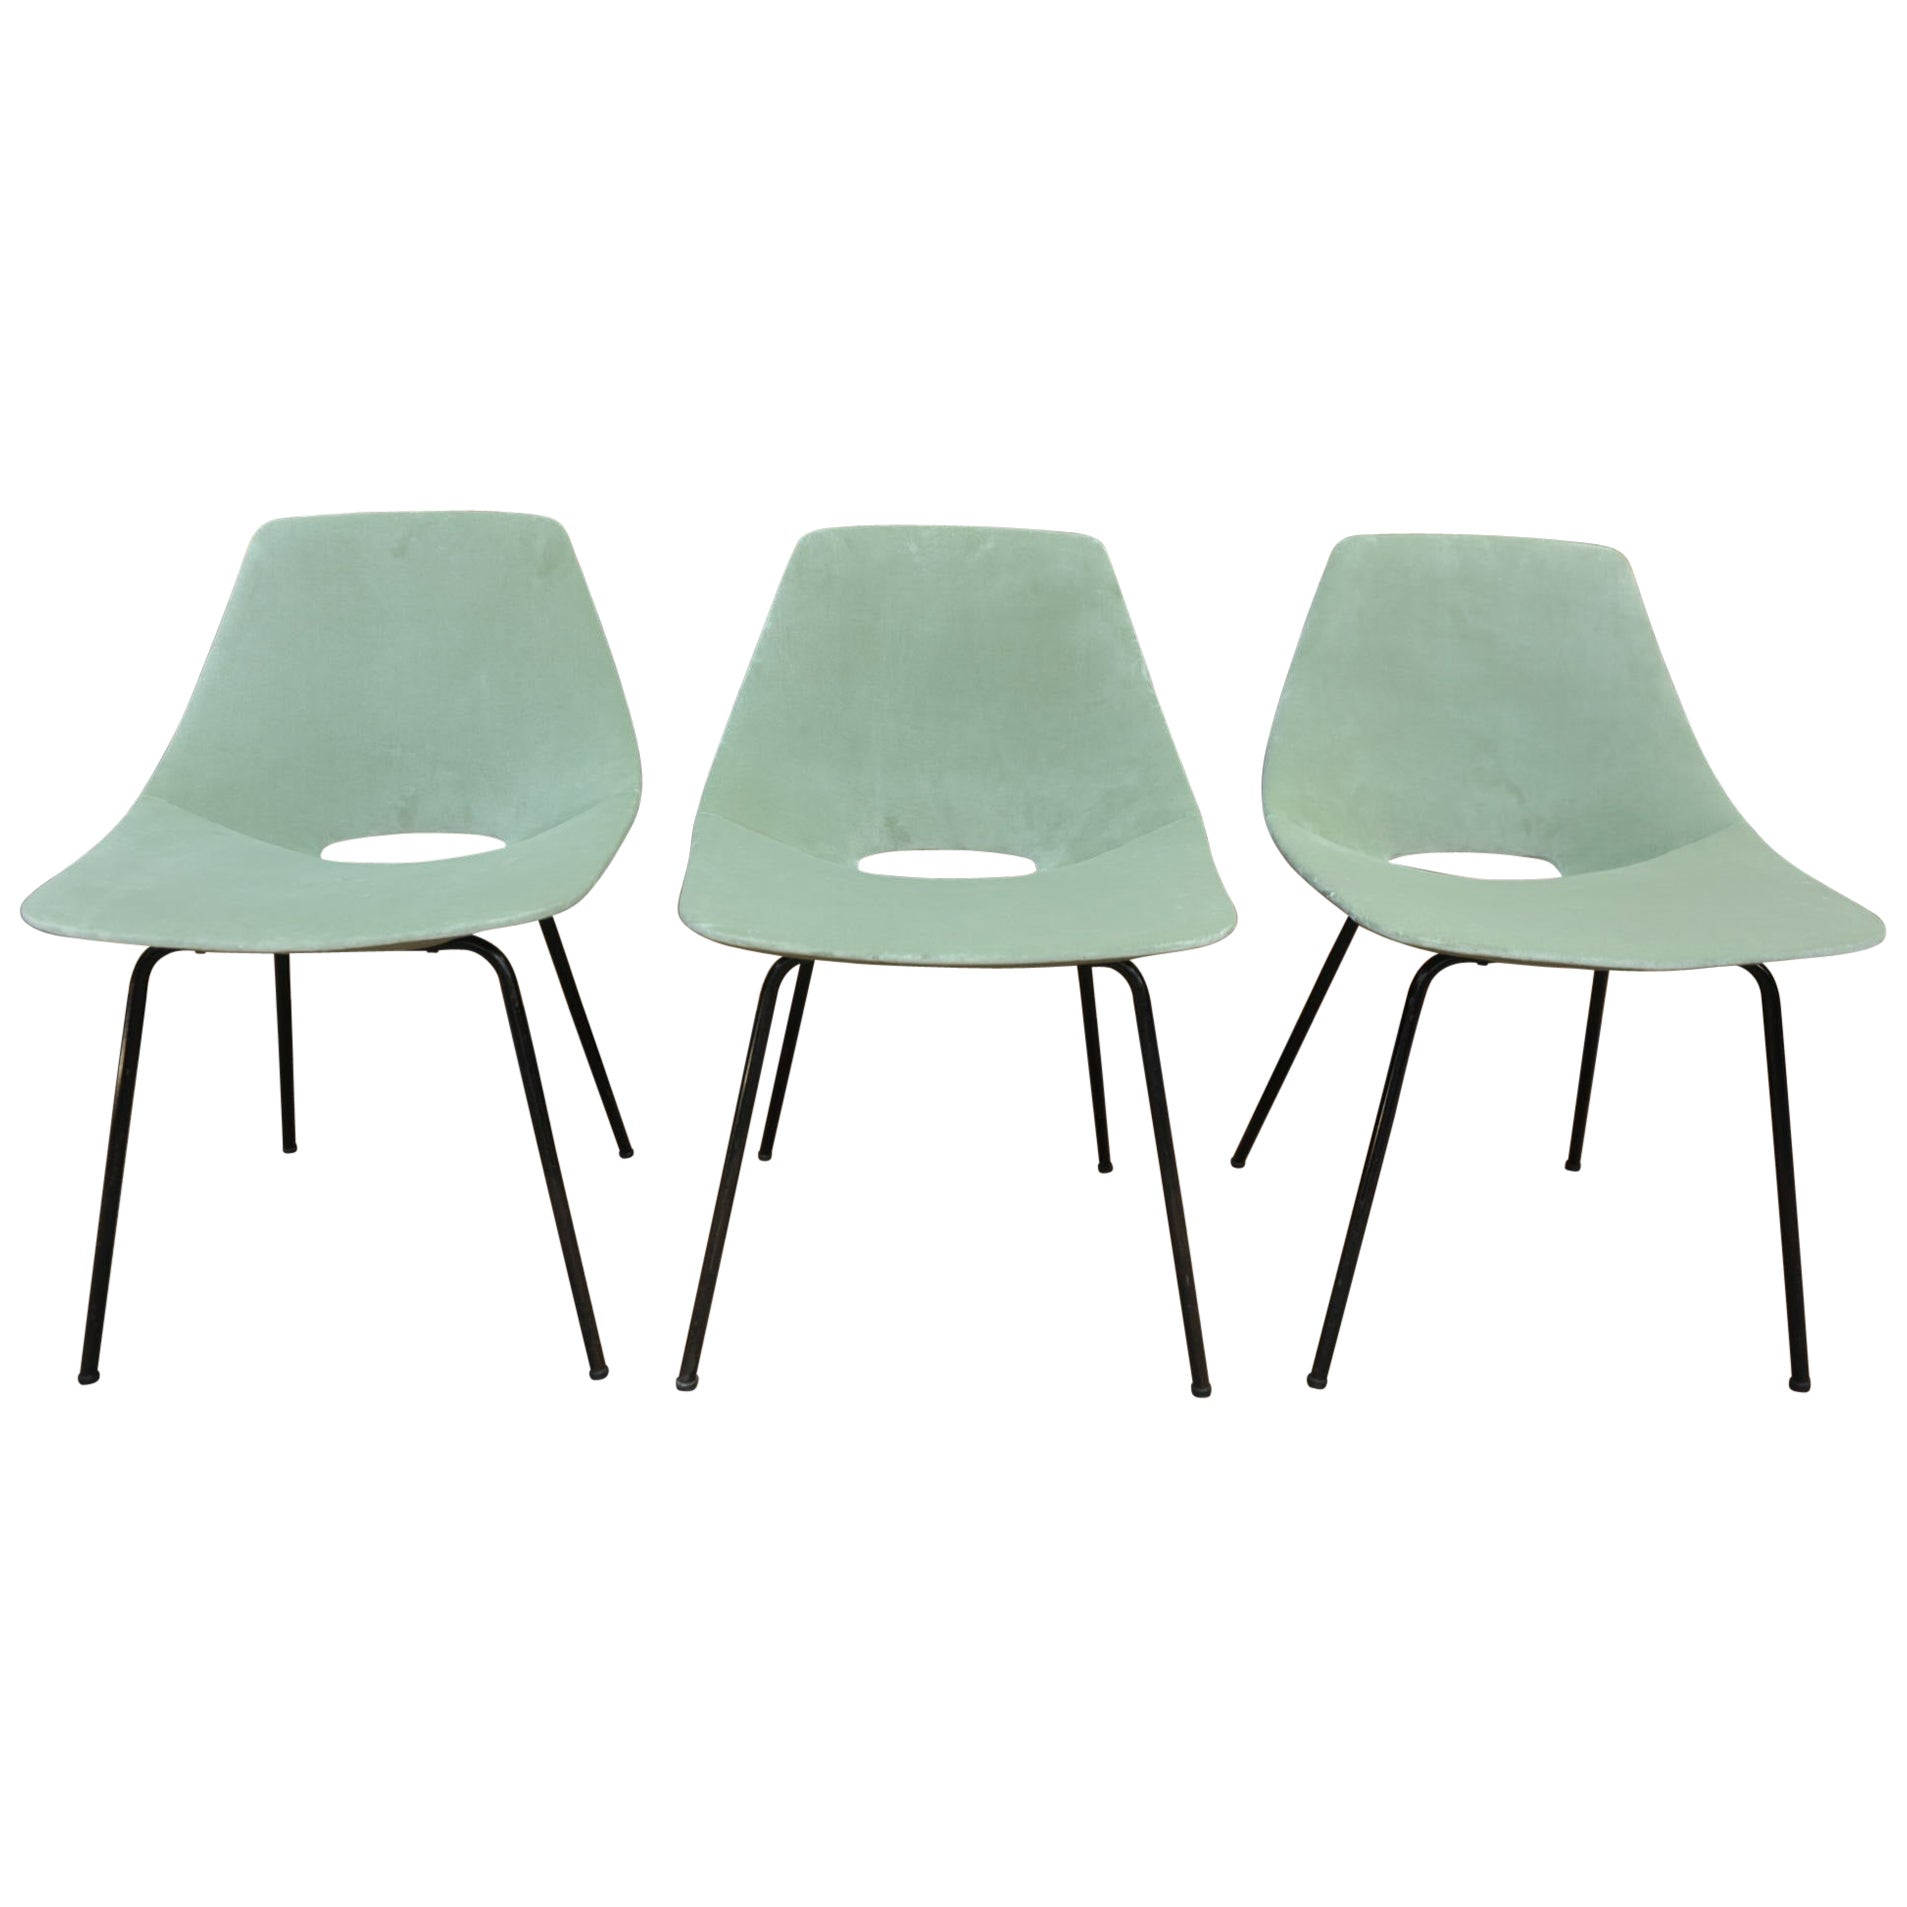 Set of 6 Tonneau Chairs by Pierre Guariche for Steiner, 1954